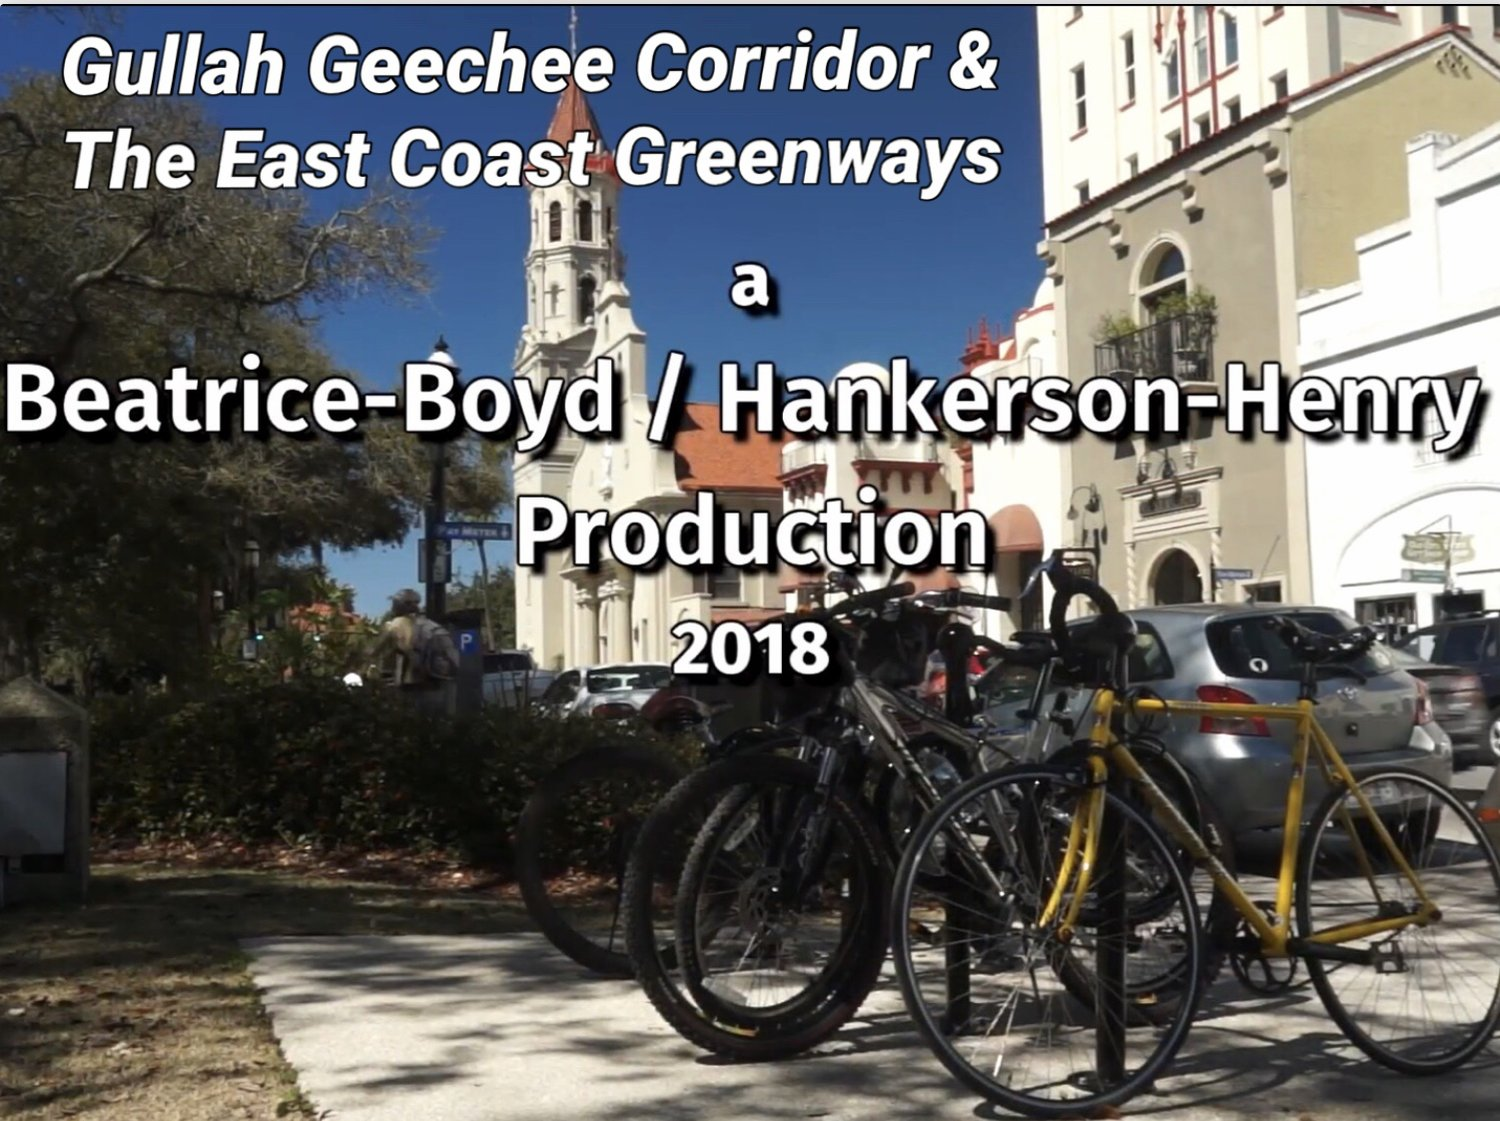 Gullah Geechee Corridor and the East Coast Greenways